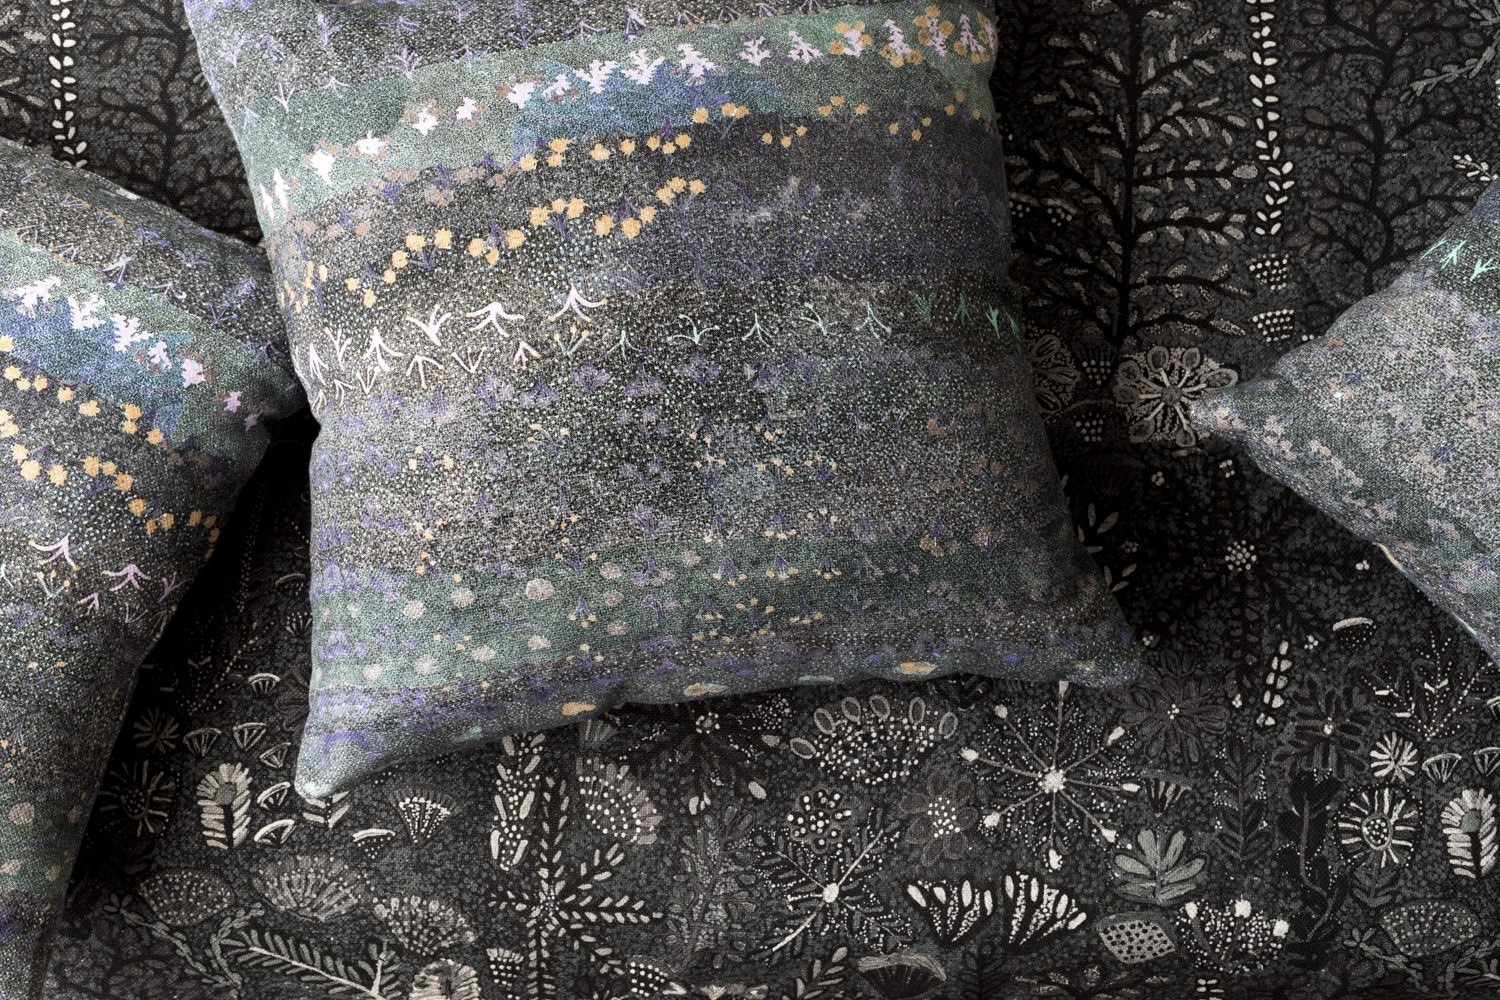 Willie Weston_Ampilatwatja Collection_fabric_Singing Bush Medicine_ Night Sky Cushions and Sugarbag Dreaming_Riverbed.jpg